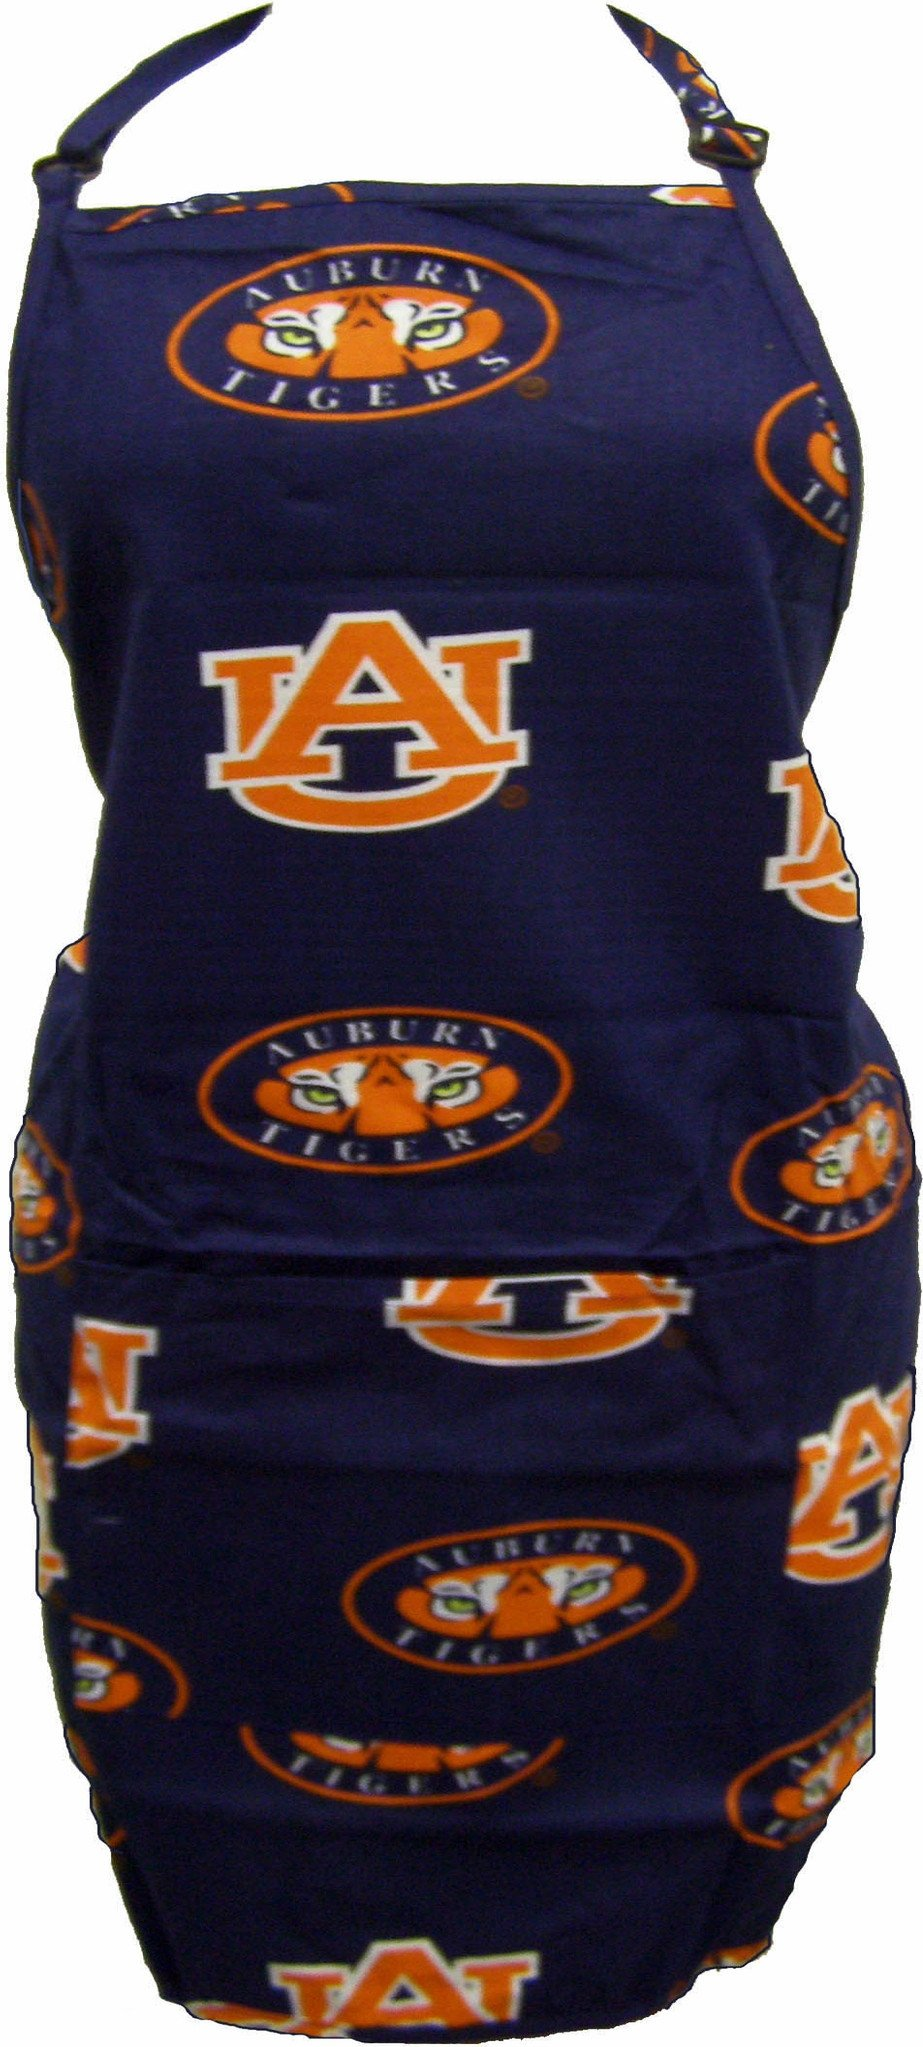 "Auburn Apron 26""X35"" with 9"" pocket - AUBAPR by College Covers from College Covers"